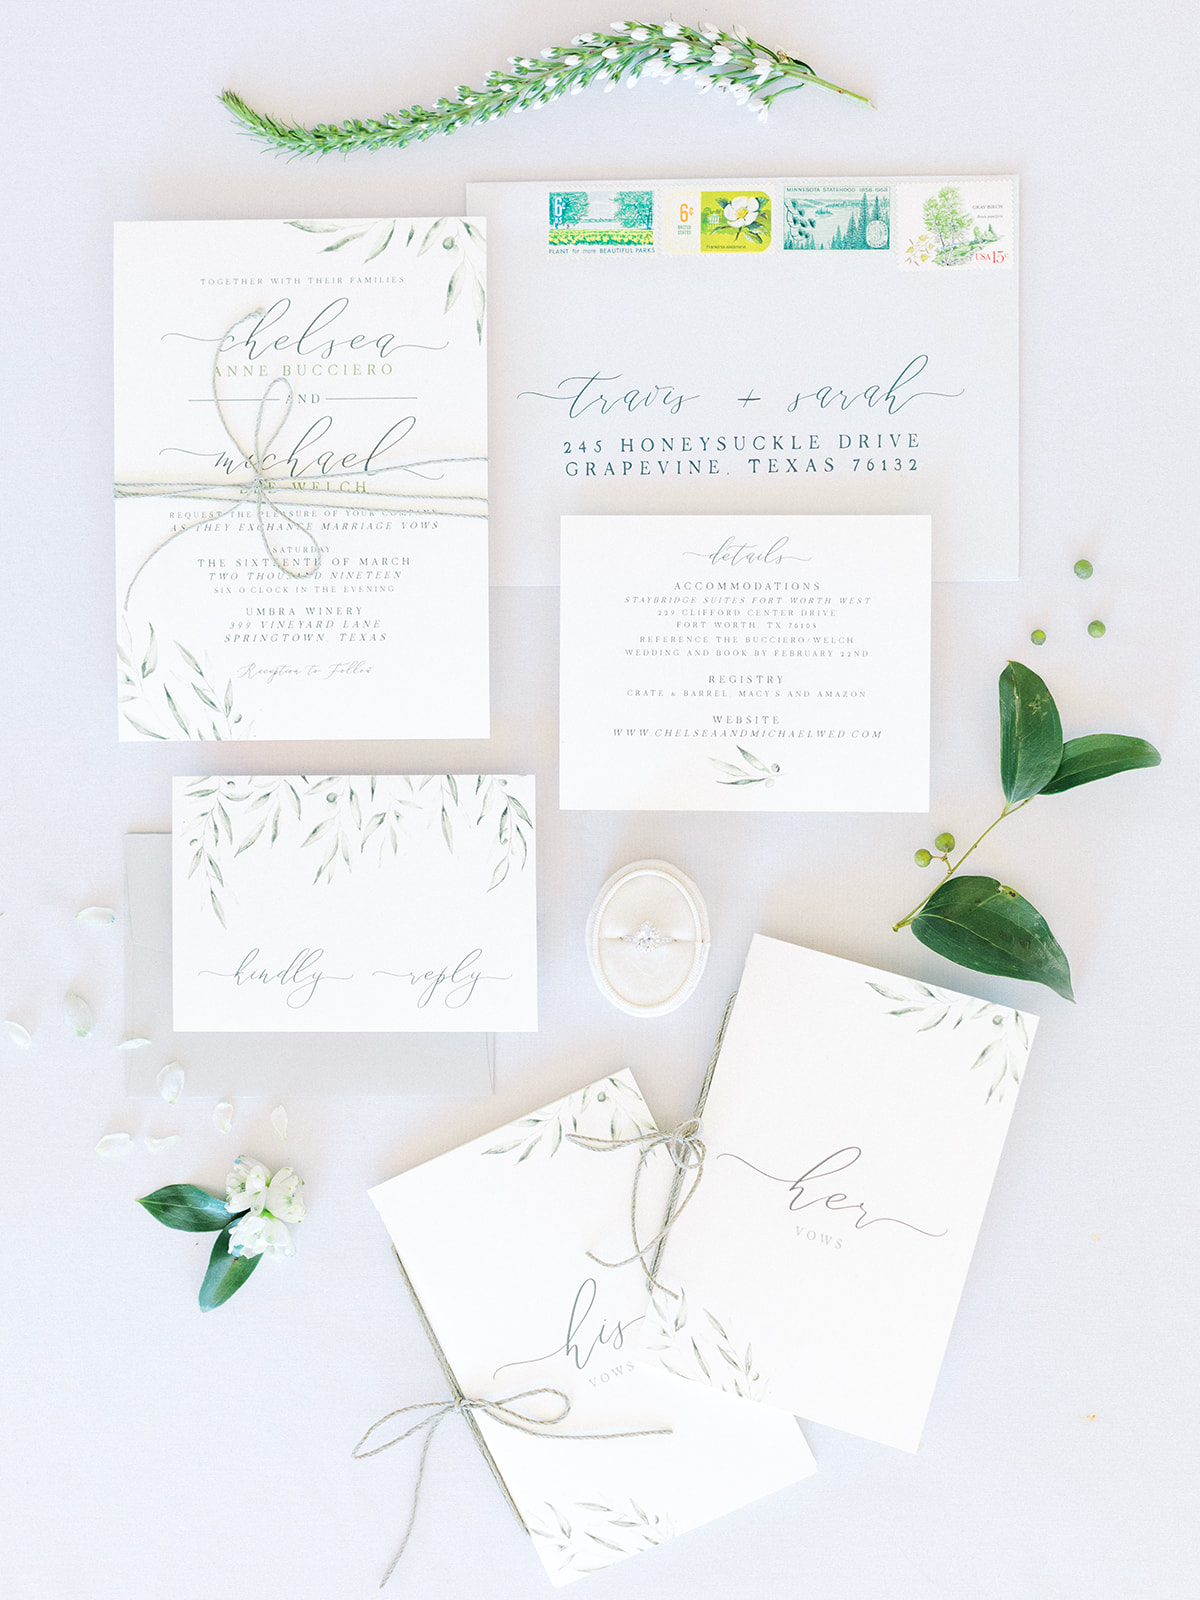 Wedding stationery: Elopement vineyard wedding at Umbra Winery by Alexa Kay Events. See more wedding ideas at alexakayevents.com!